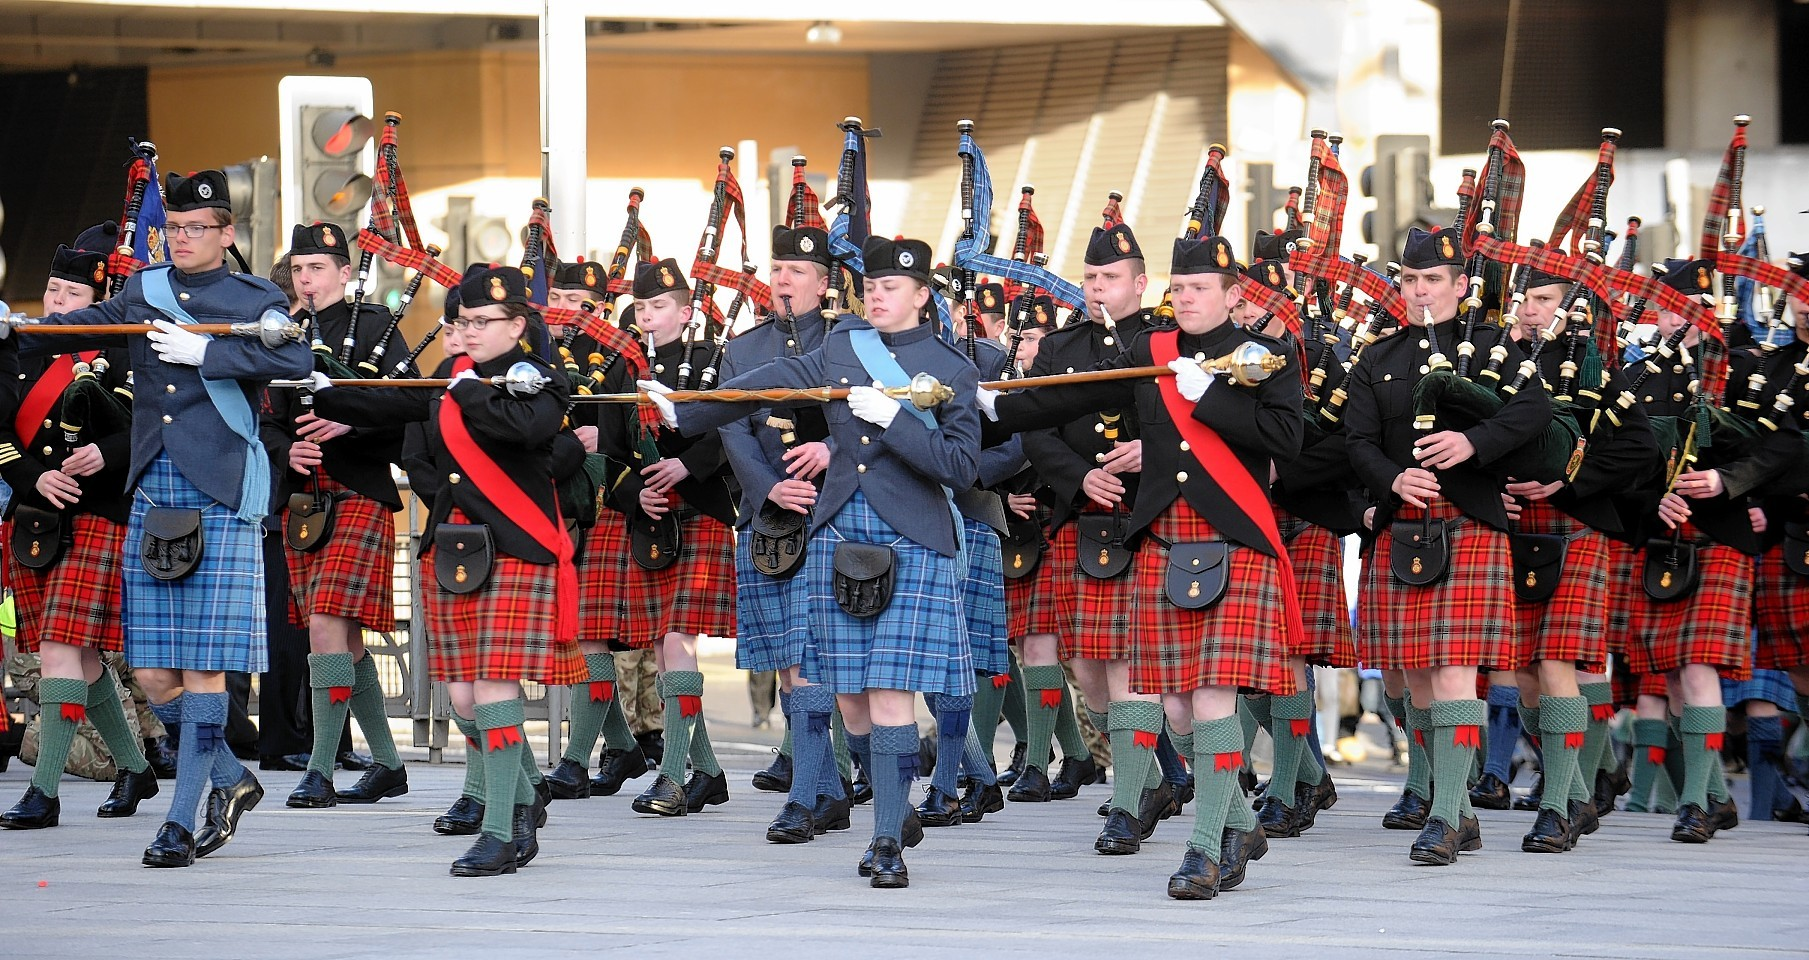 Around 100 pipers and drummers marched in Falcon Square